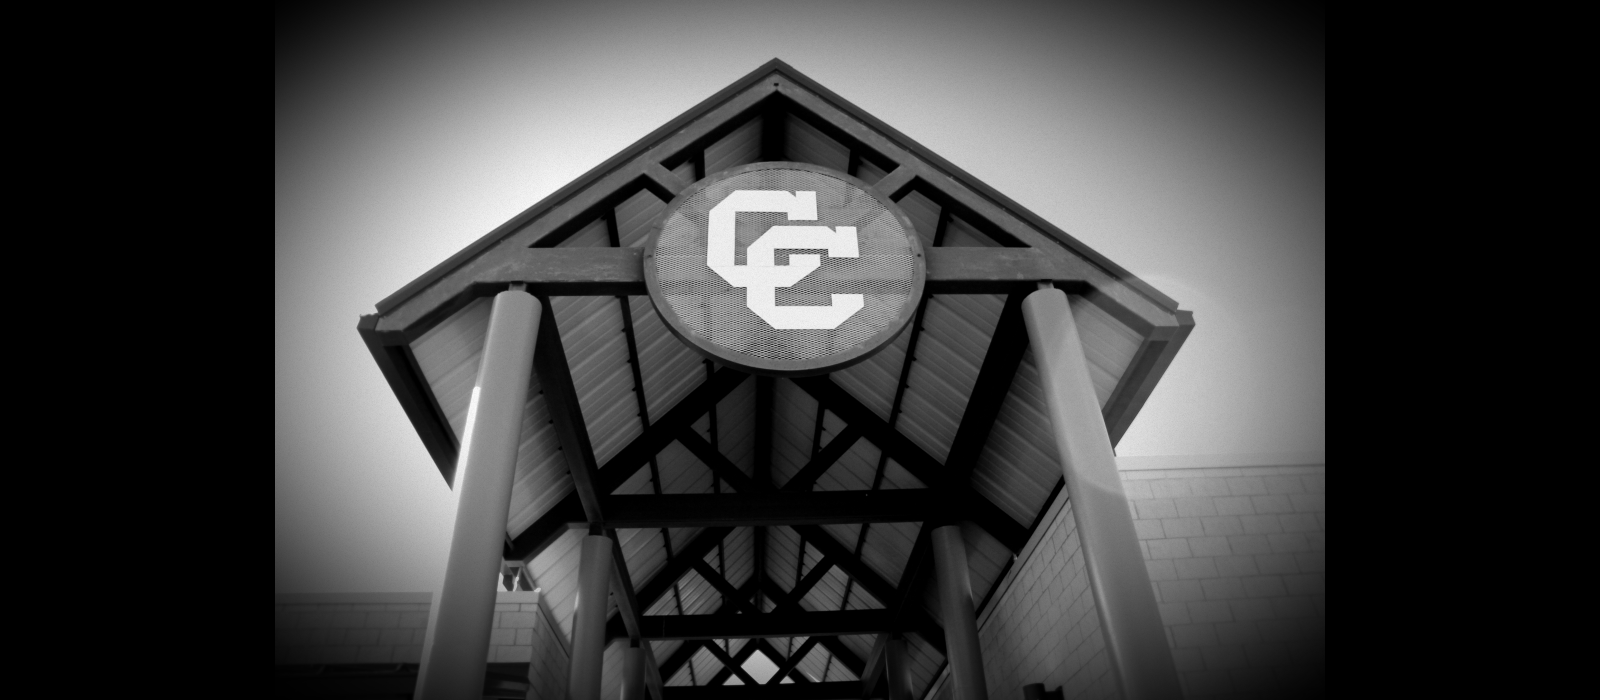 CC emblem at stadium